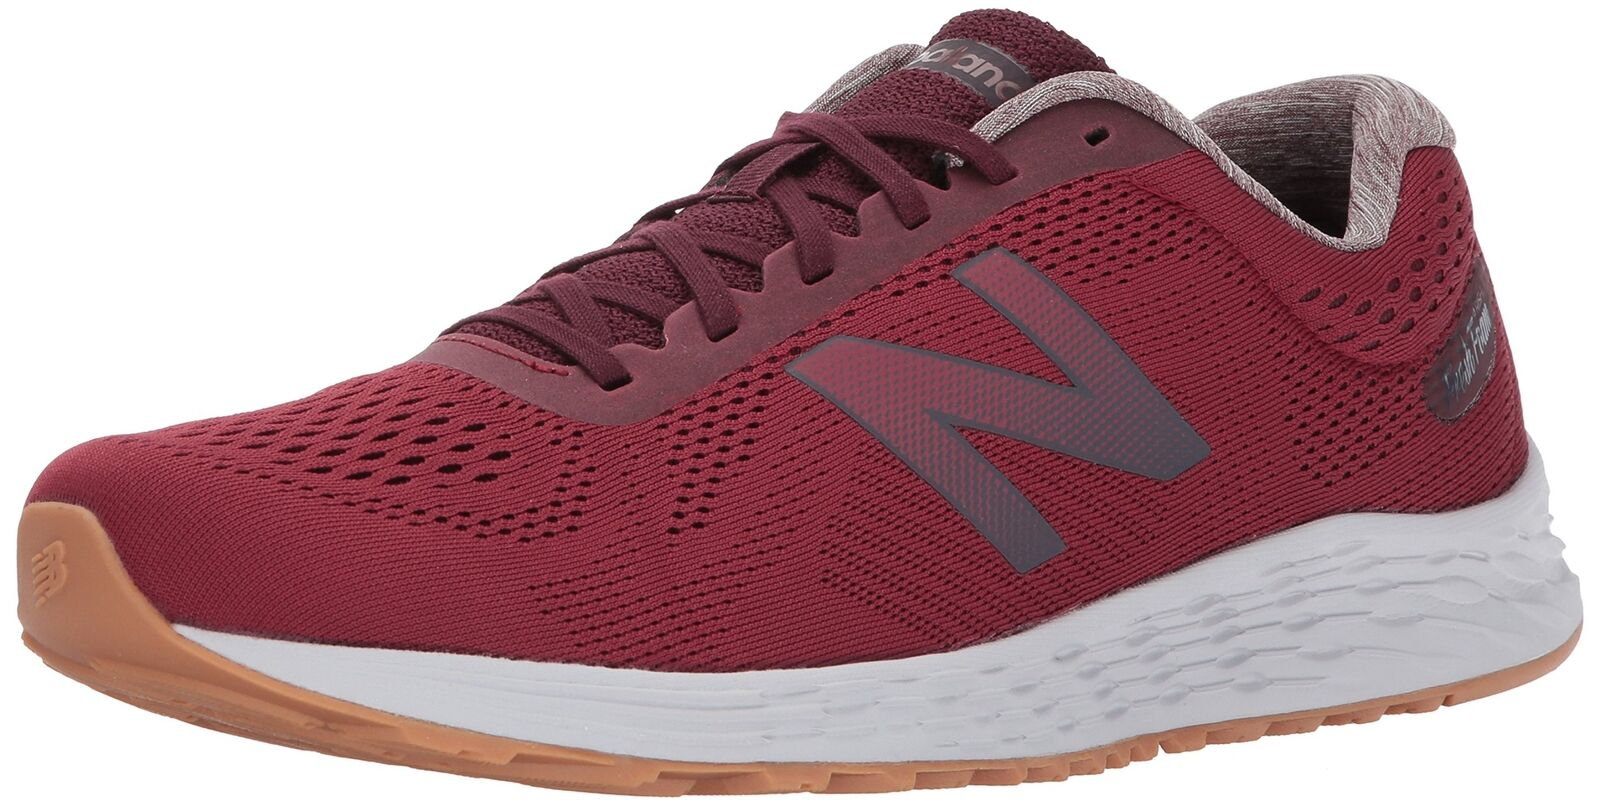 New Balance Men's Arishi V1 Running-shoes, Dark Red, 12 D US